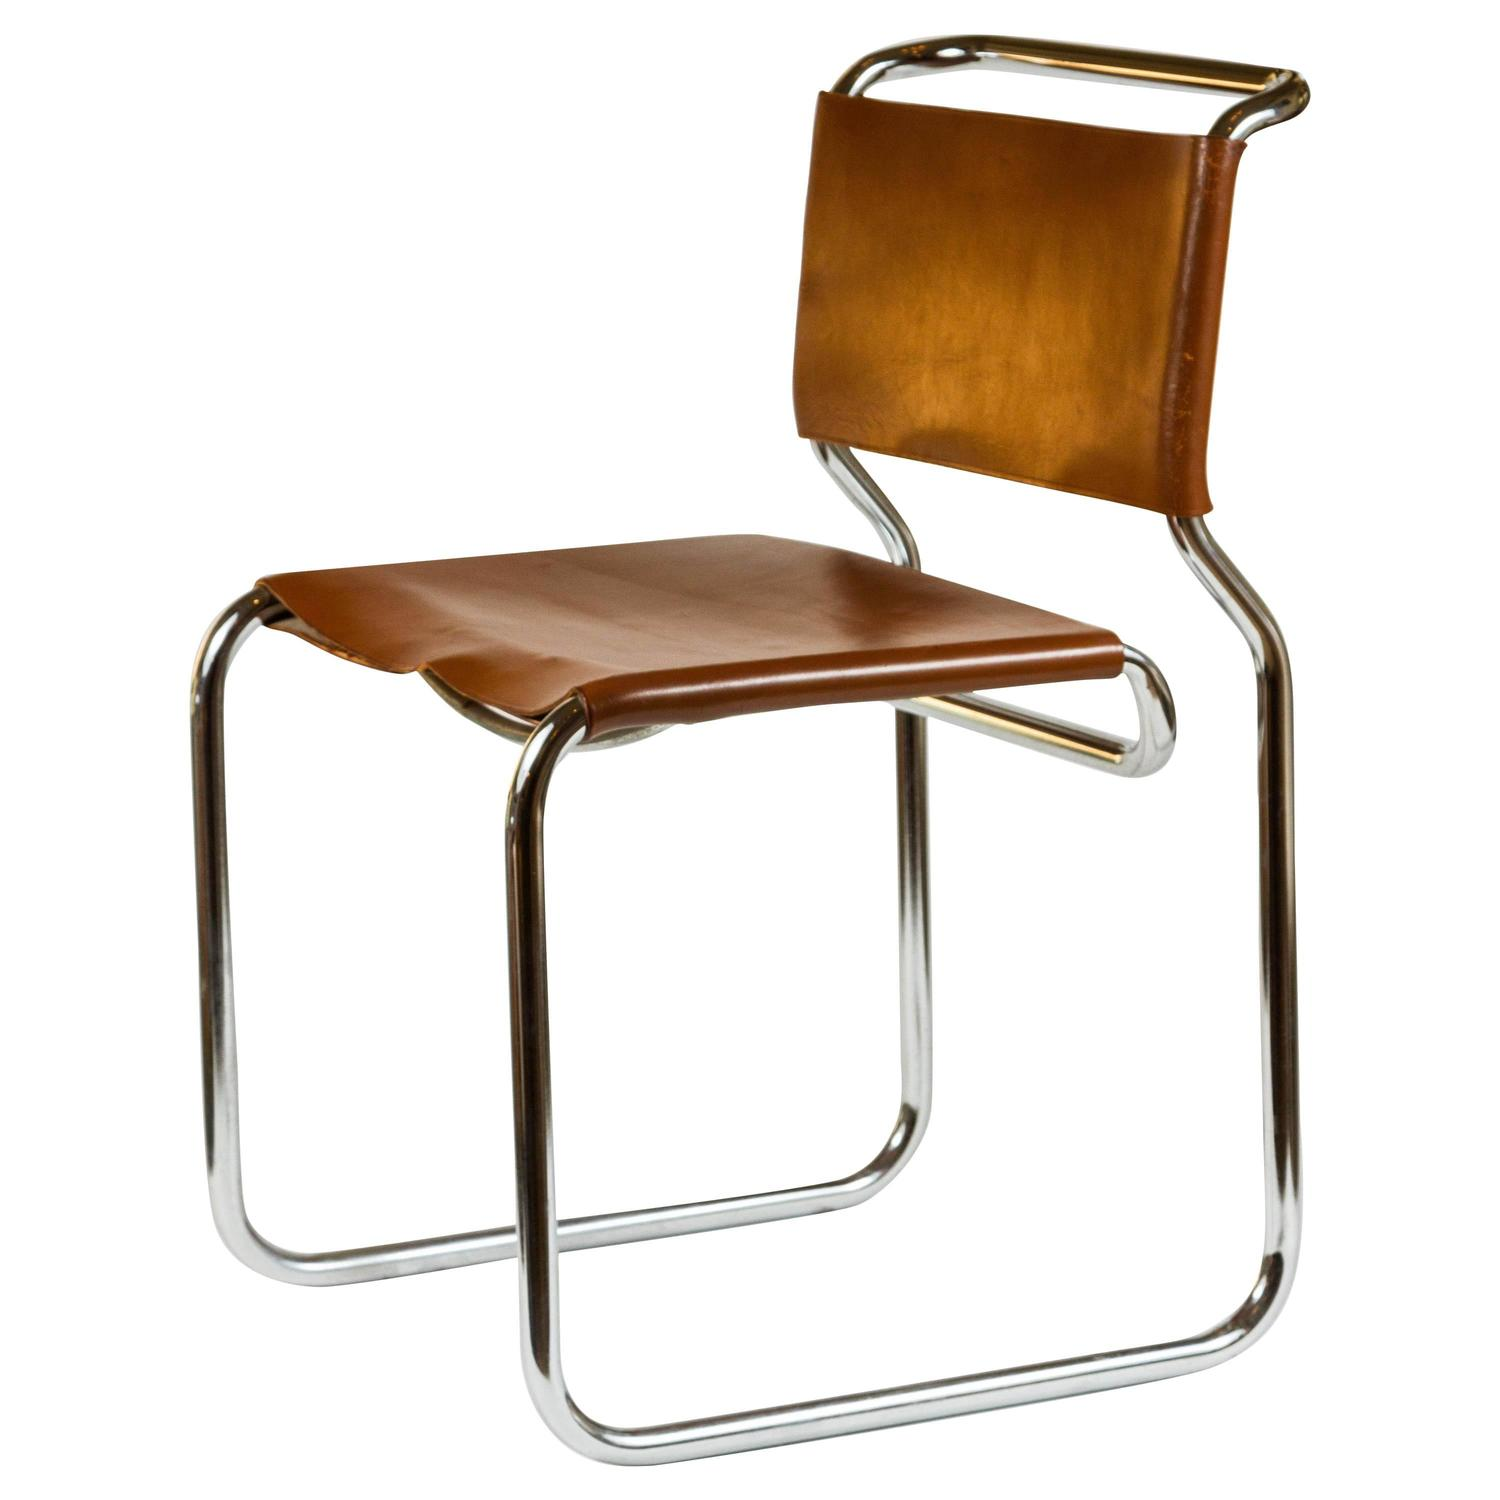 leather and chrome chairs designer office cantilevered chair at 1stdibs